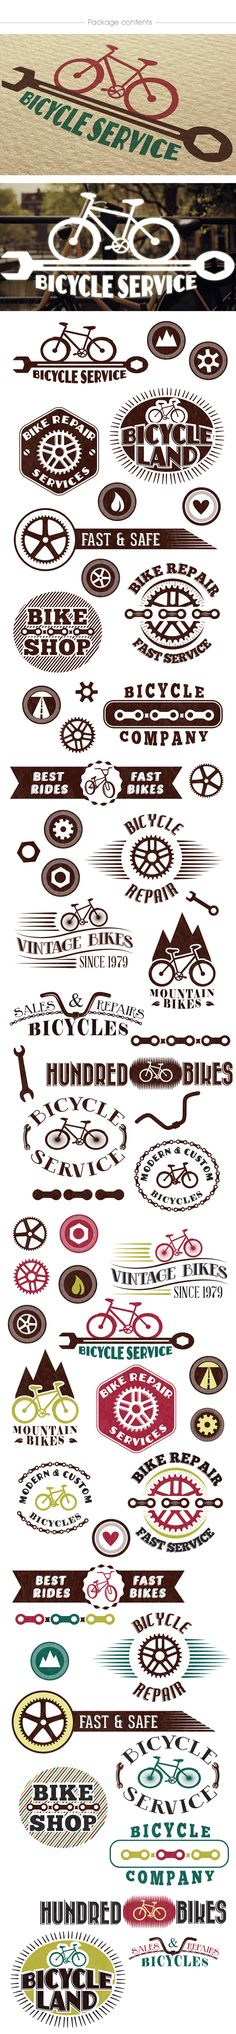 logozilla2-logo-builder-bicycle-shop-large